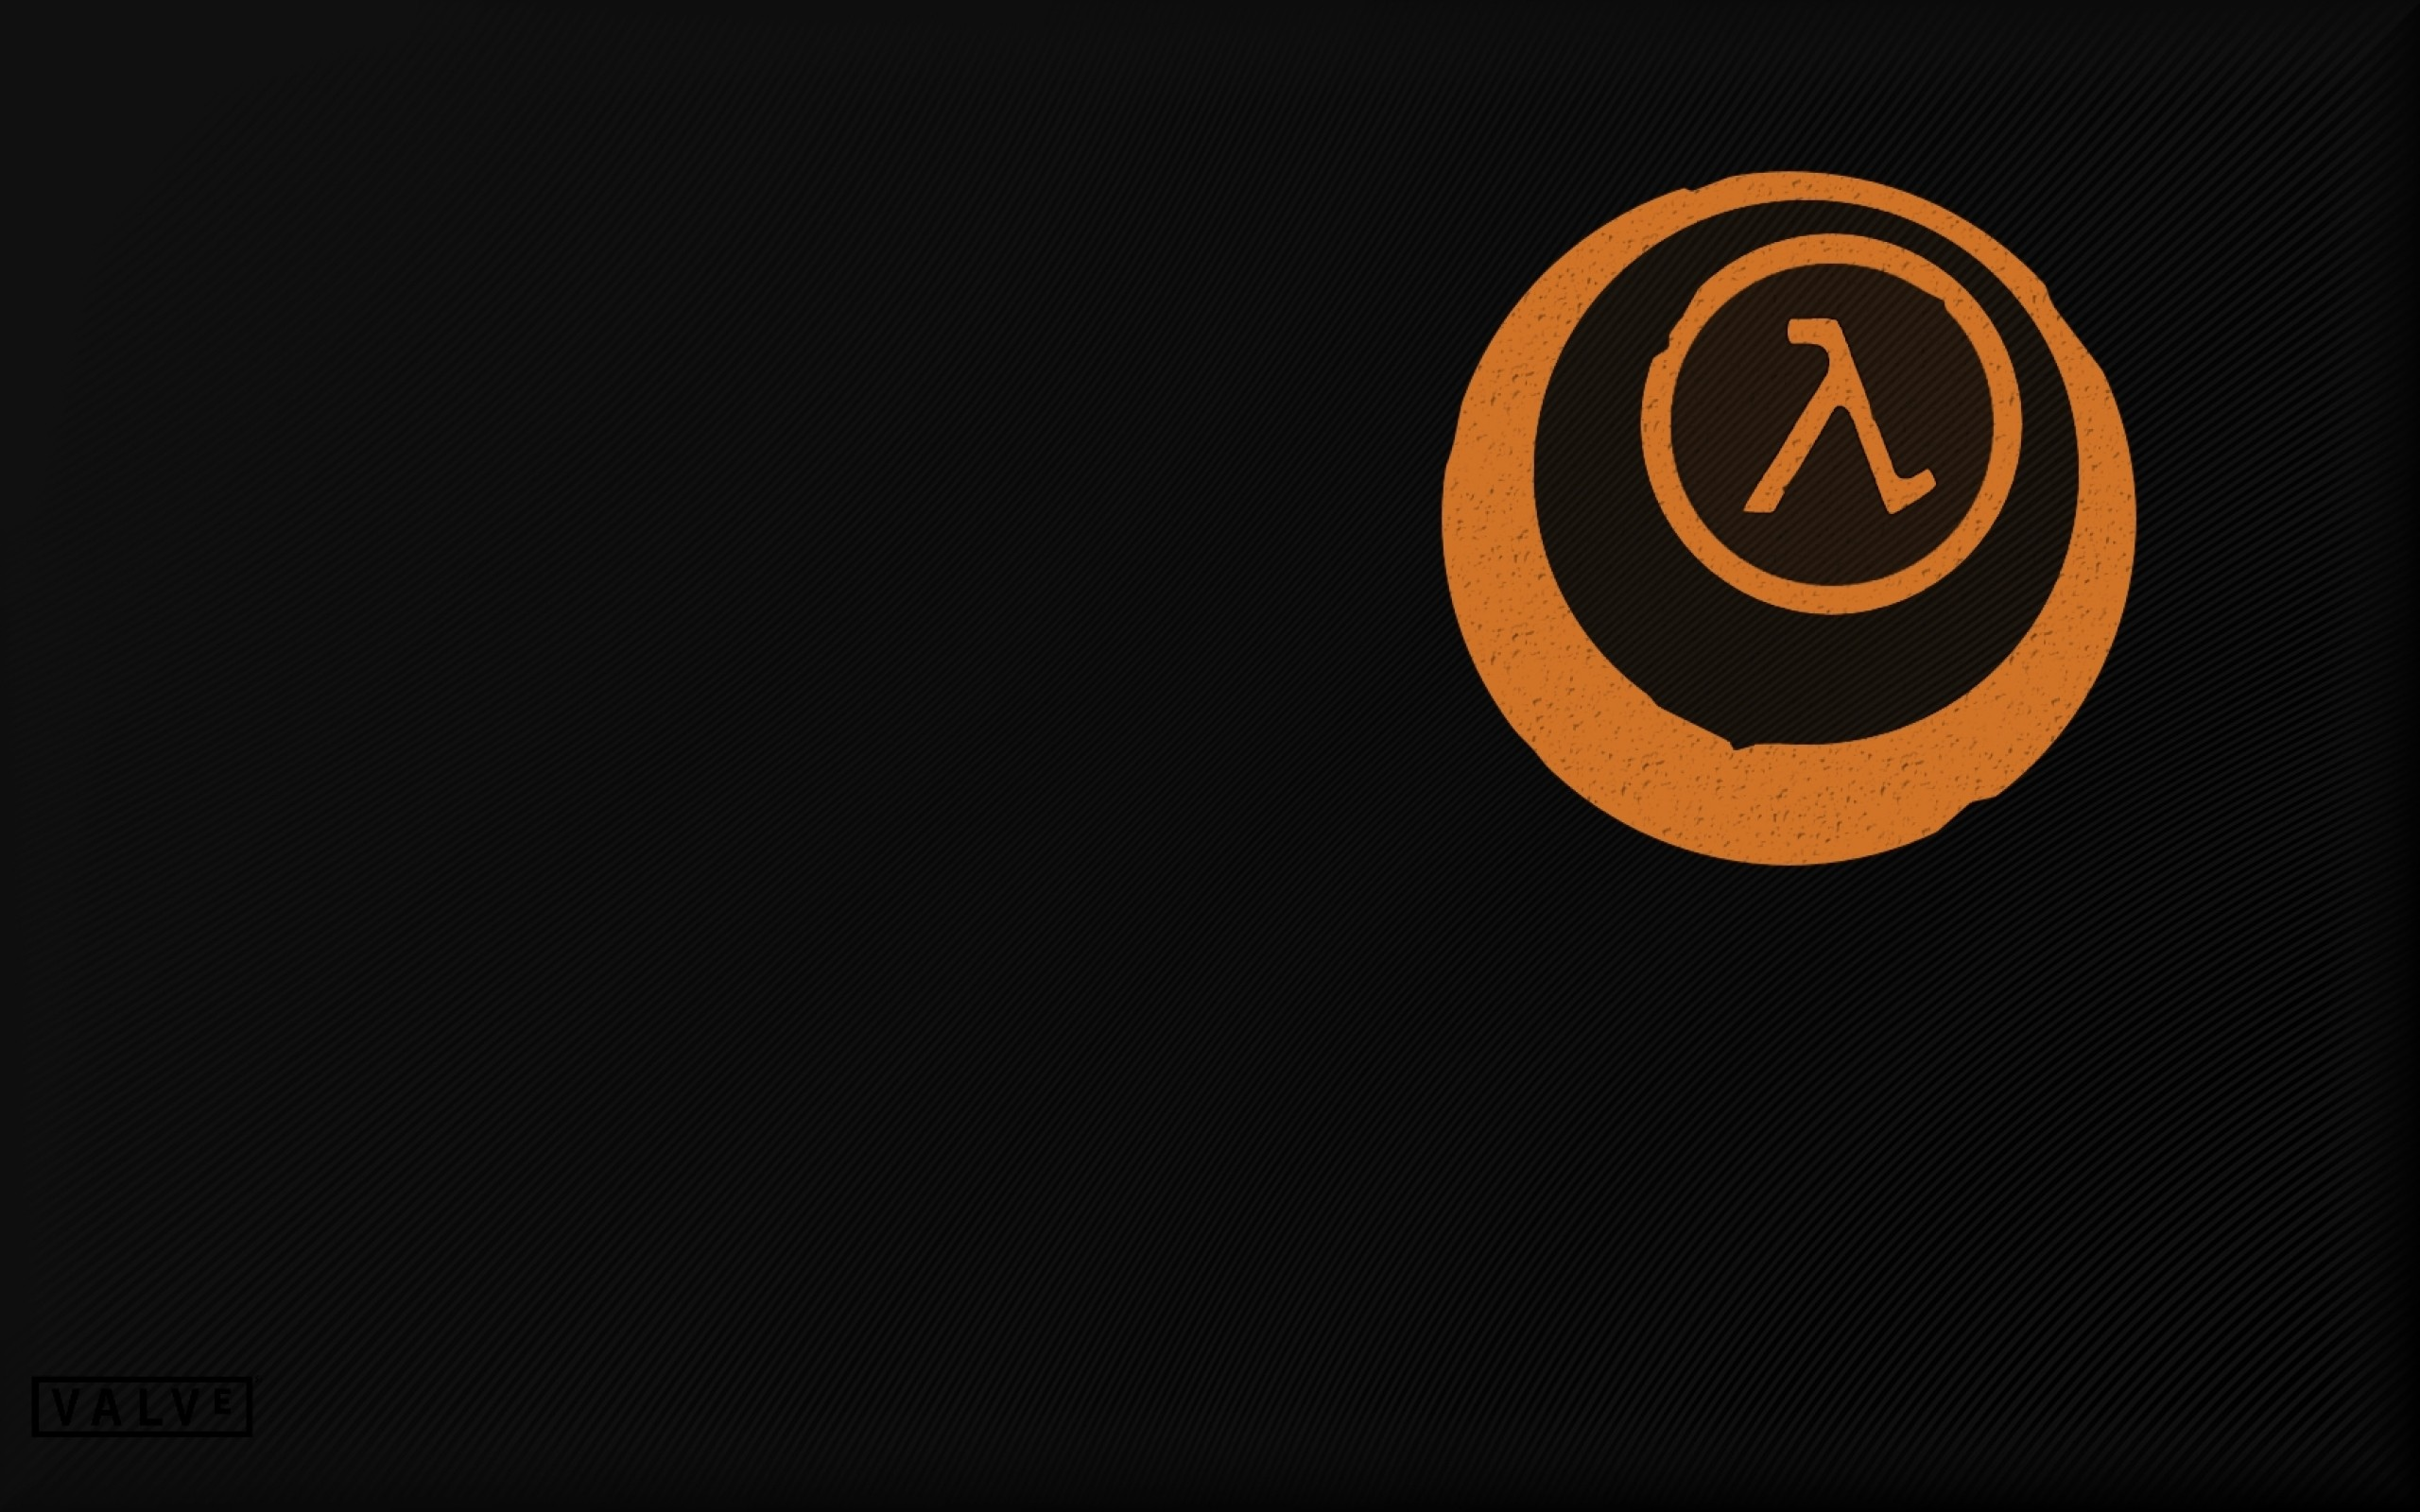 2560x1600 Half Life 2 Images by Justin Petrie on FeelGrafix | feelgrafix.com |  Pinterest | Half life and Gaming